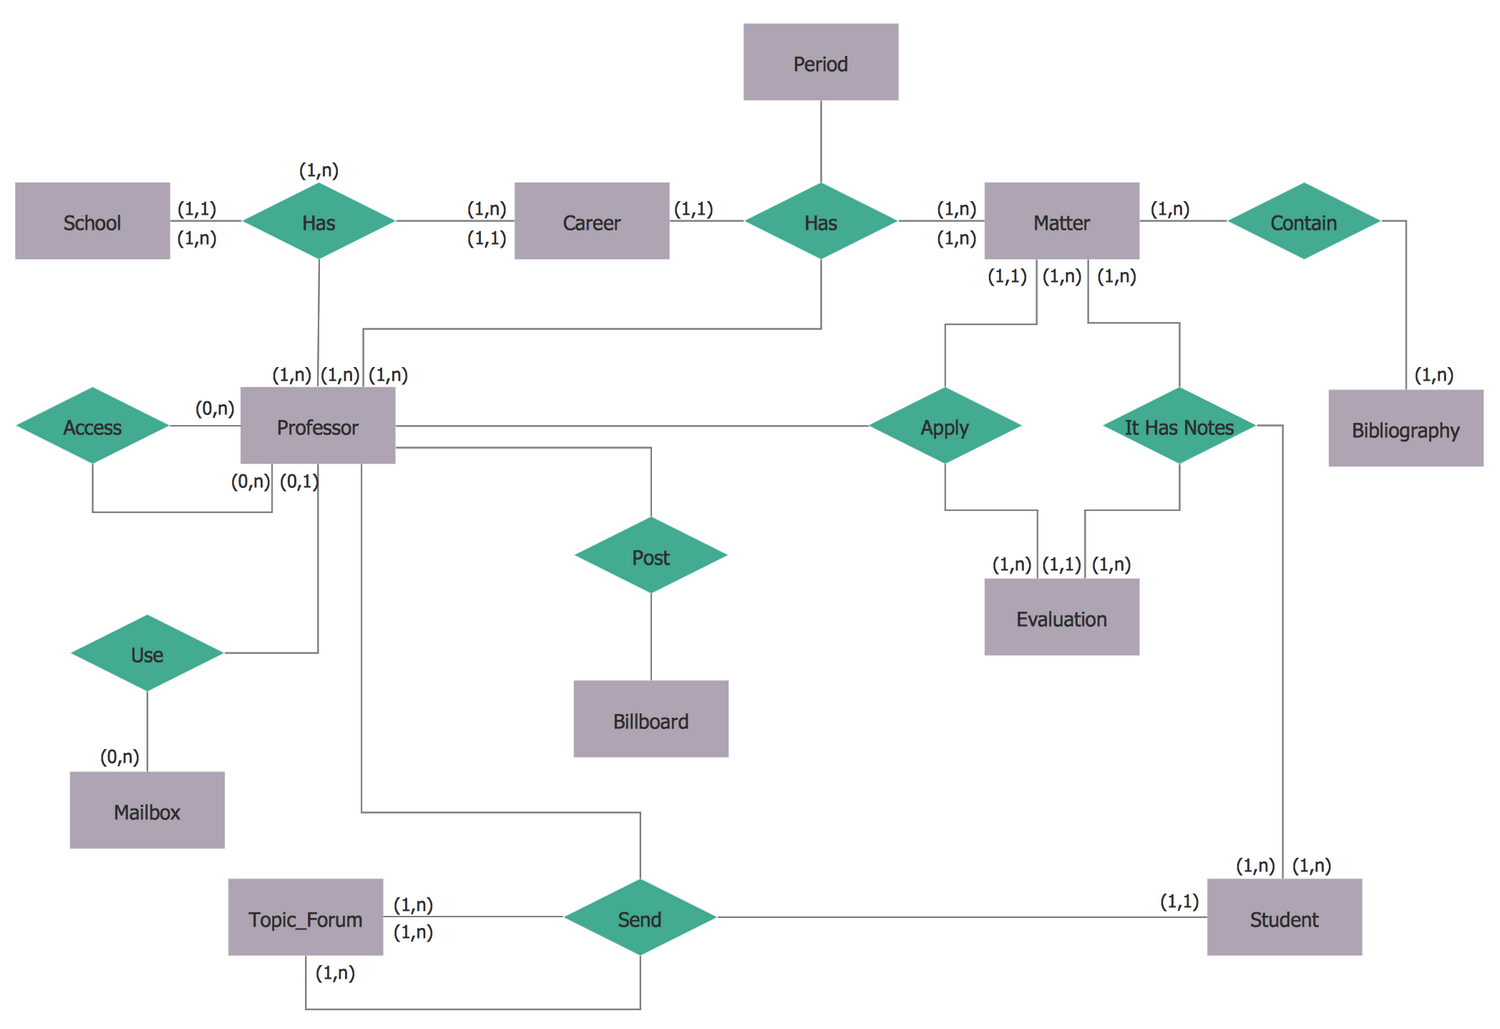 library management system in uml with all diagrams 2008 chevy cobalt wiring diagram entity relationship (erd) solution | conceptdraw.com